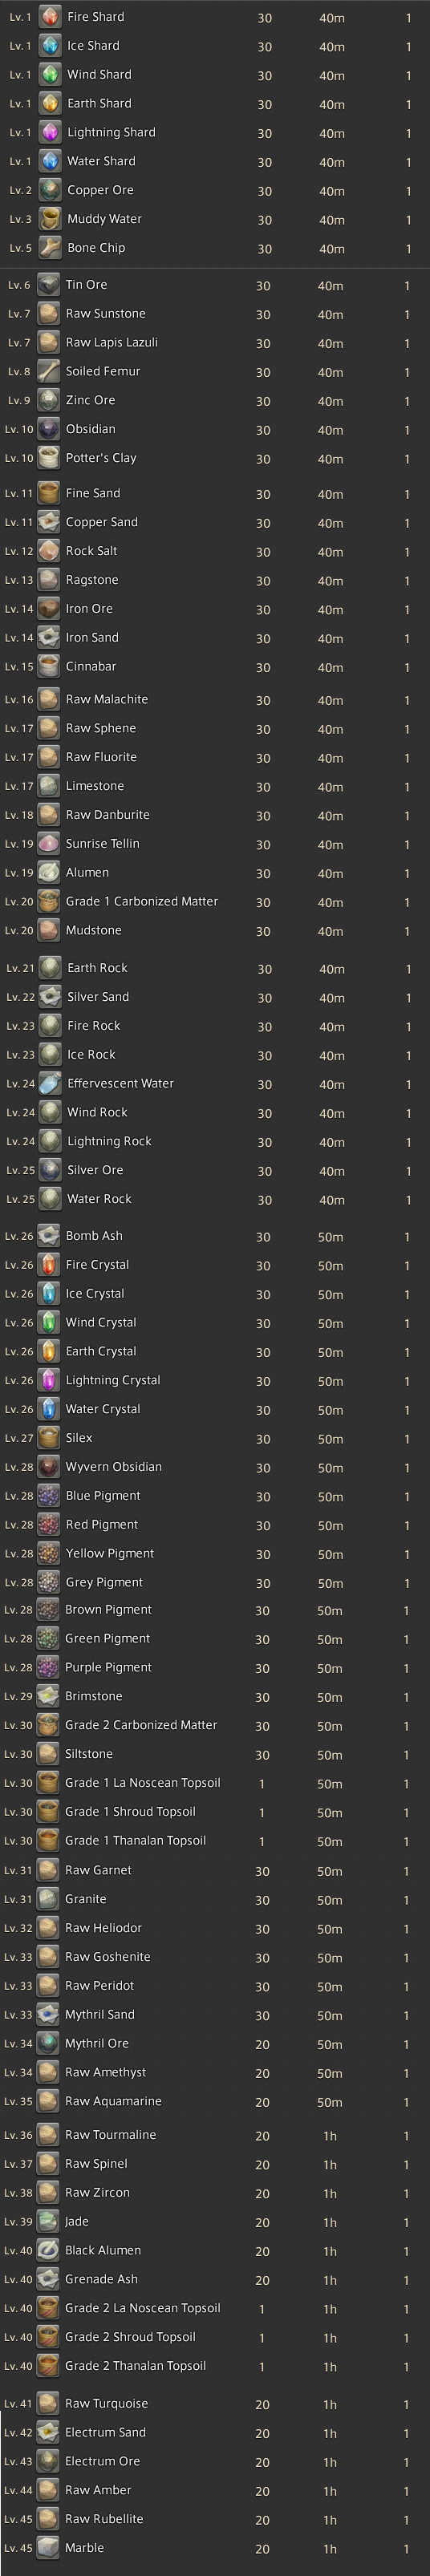 seravi edalborez ffxiv retainer continues long lost death upon compendium useful pugs out-dps sanction will never